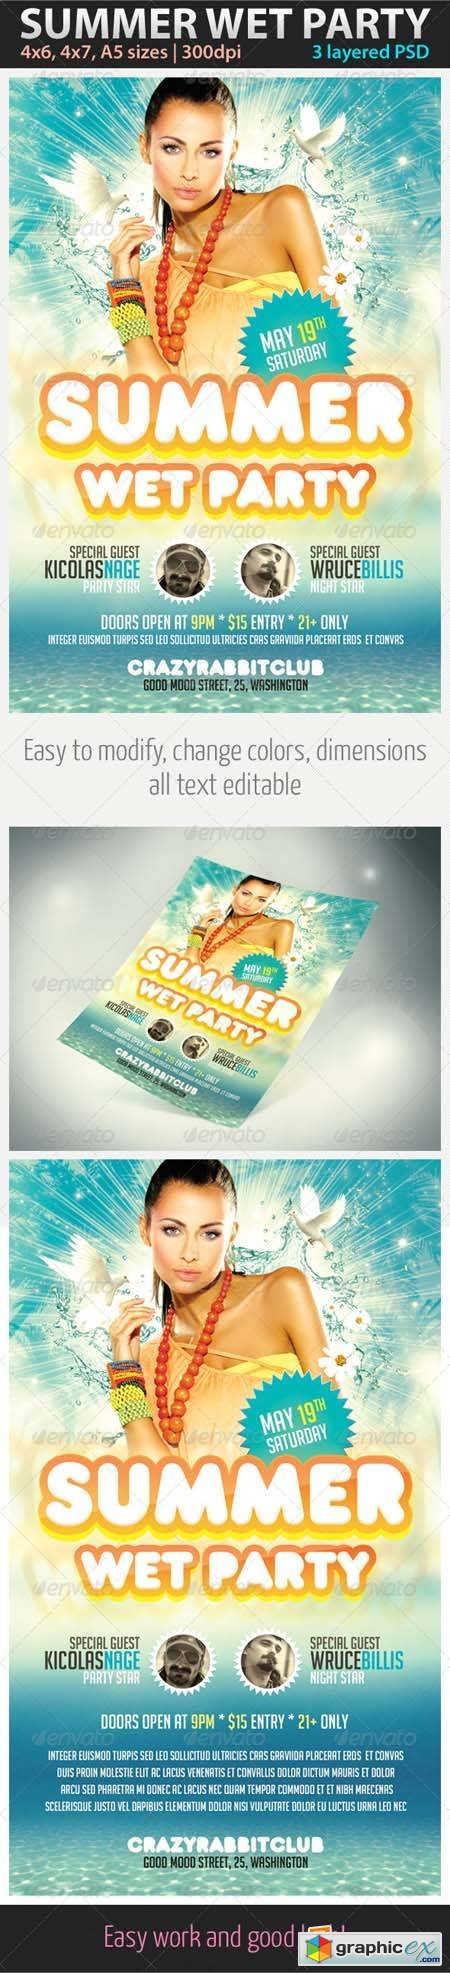 Summer Wet Party Flyer 2364178